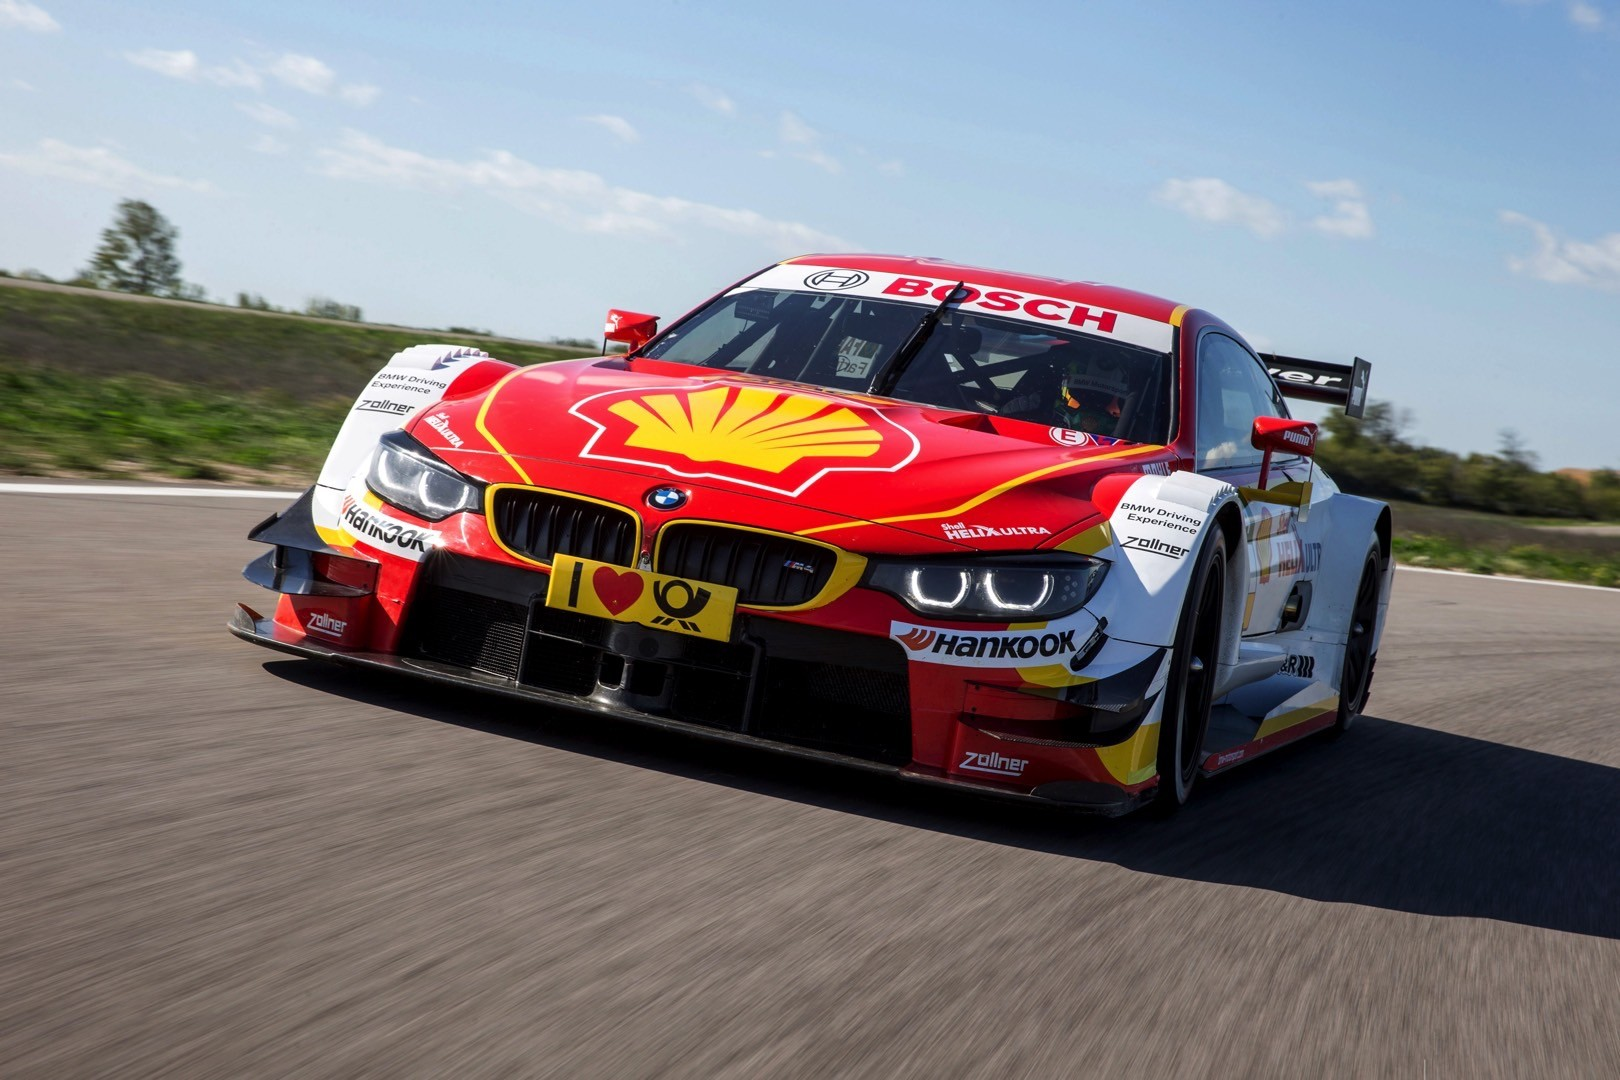 shell-will-have-its-own-bmw-m4-dtm-car-t